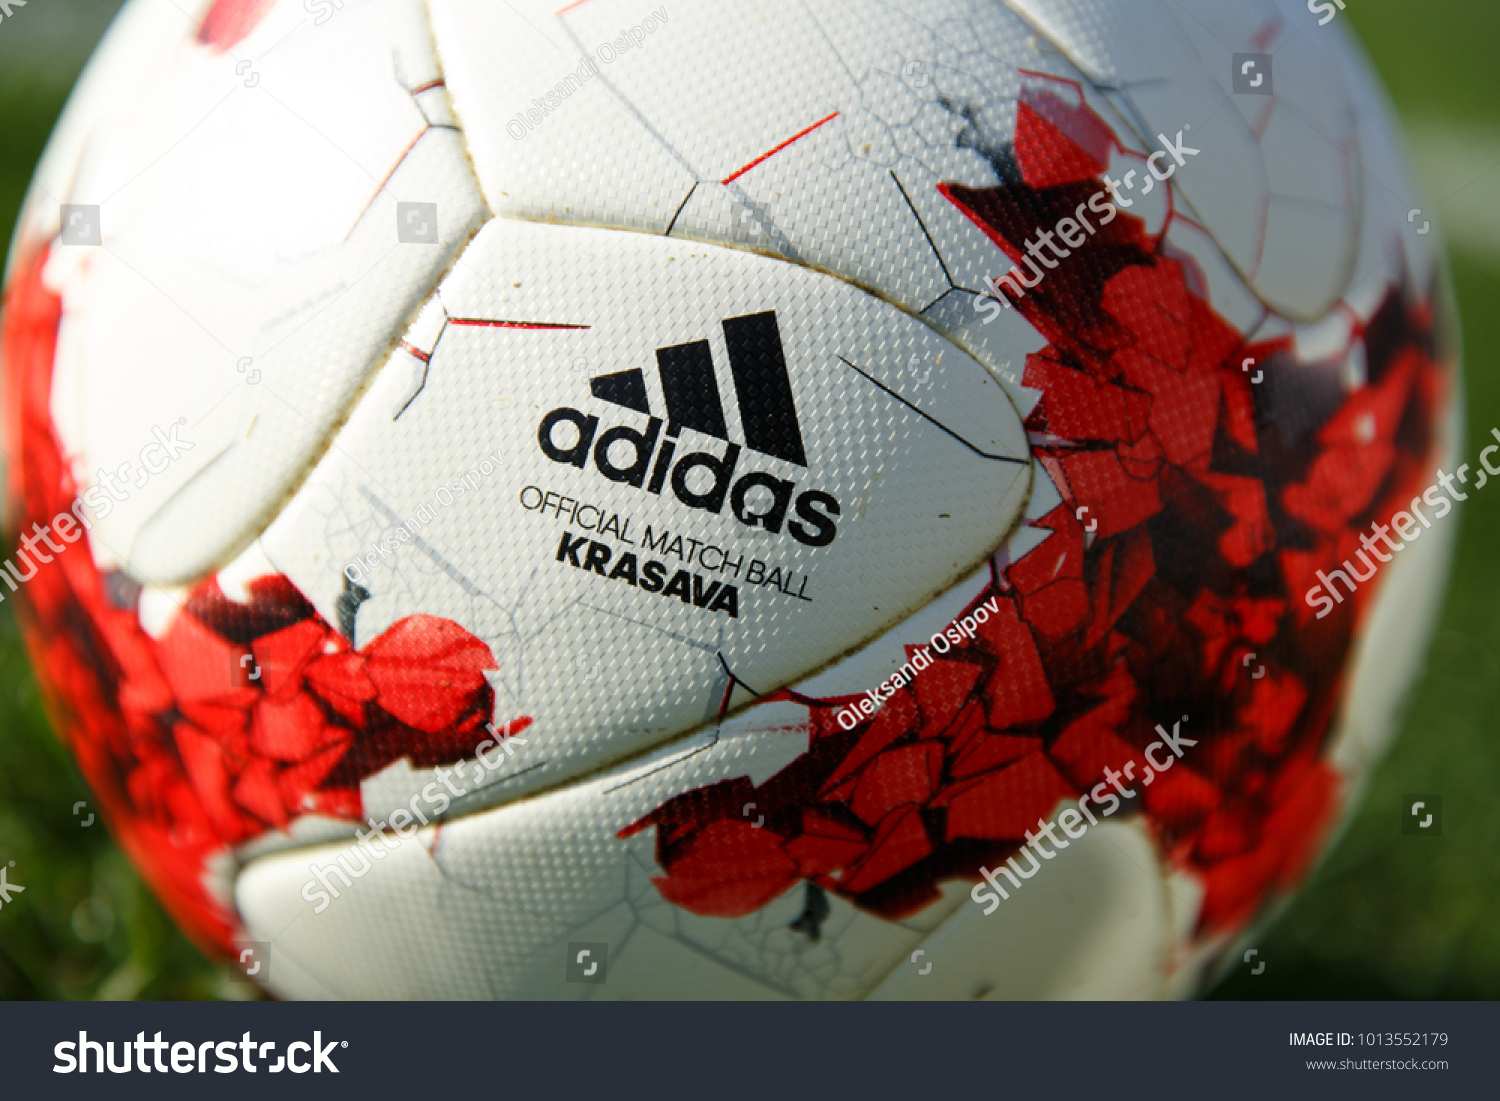 Wonderful Europe World Cup 2018 - stock-photo-munich-europe-january-the-official-ball-of-the-fifa-world-cup-adidas-krasava-logo-1013552179  Pictures_592498 .jpg